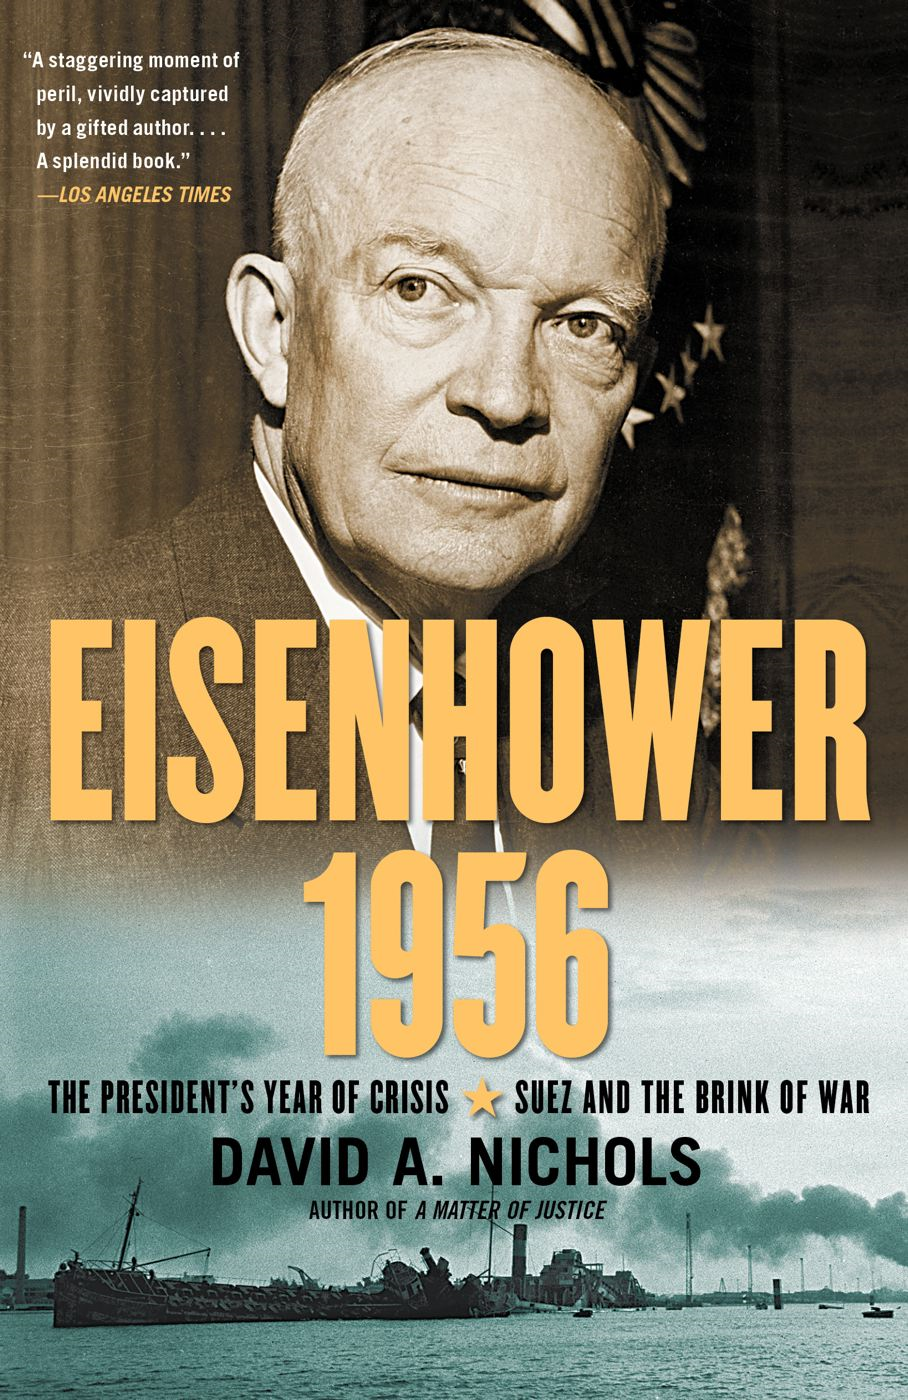 Eisenhower 1956 By: David. A. Nichols